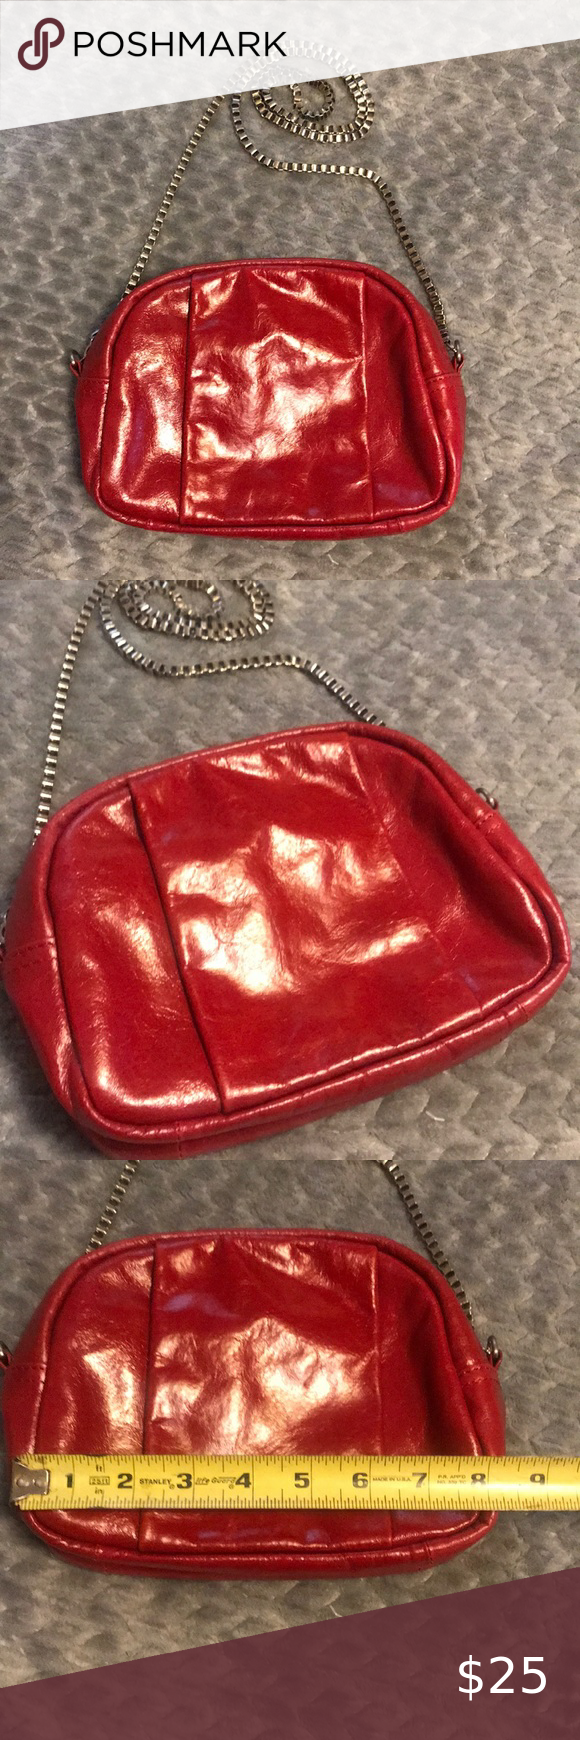 Walter Baker Red Leather Handbag in 2020 Red leather